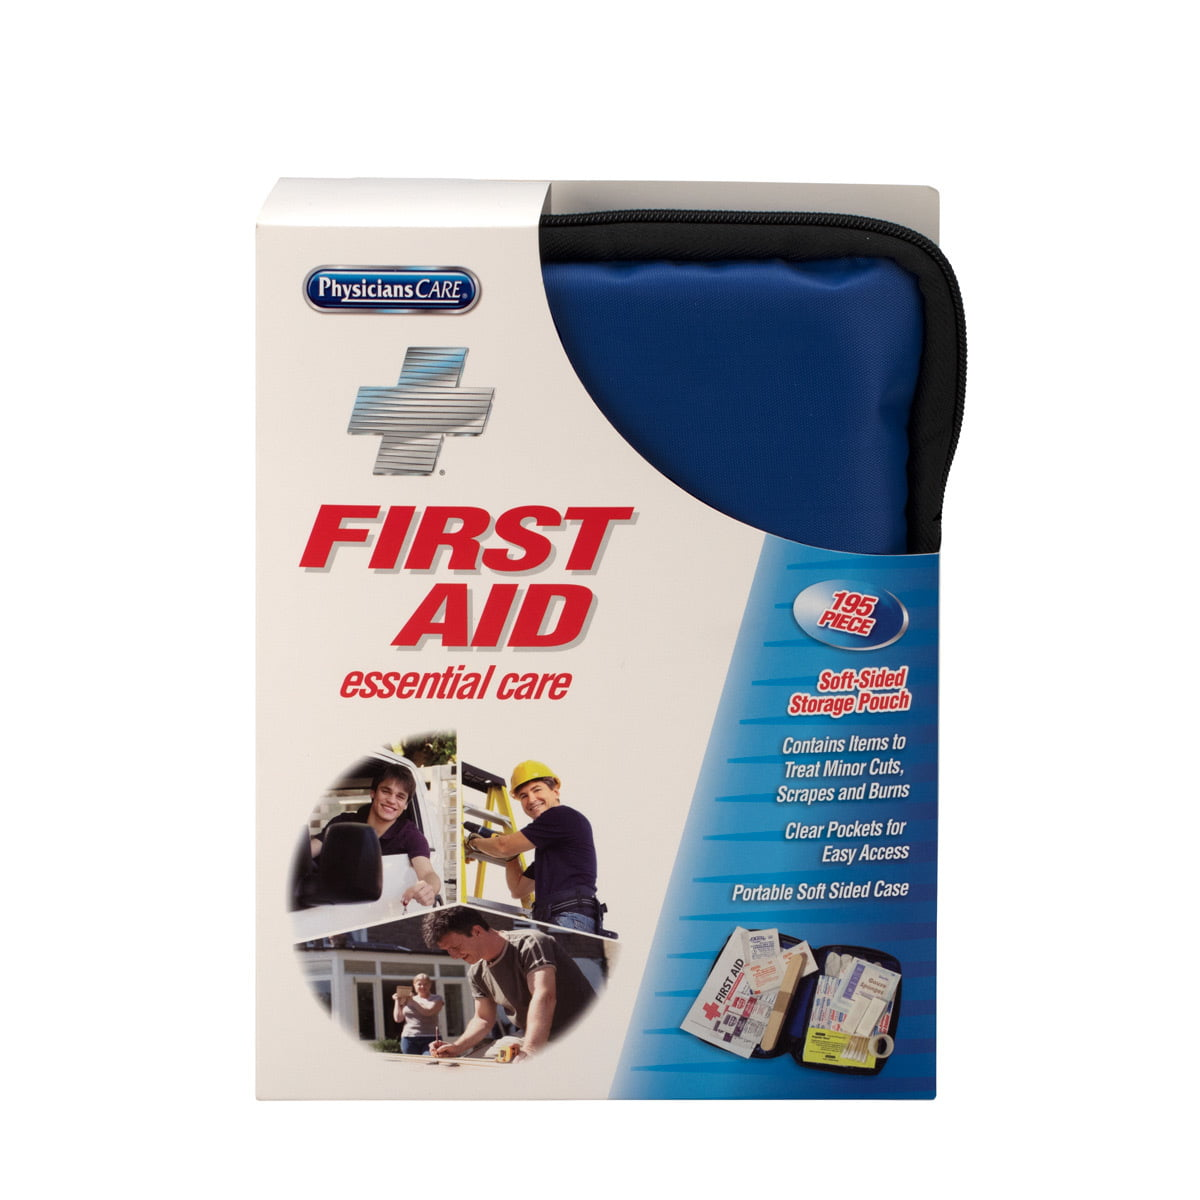 First Aid Only Essential Care First Aid Kit, Fabric Case, 195 Pc by PhysiciansCare